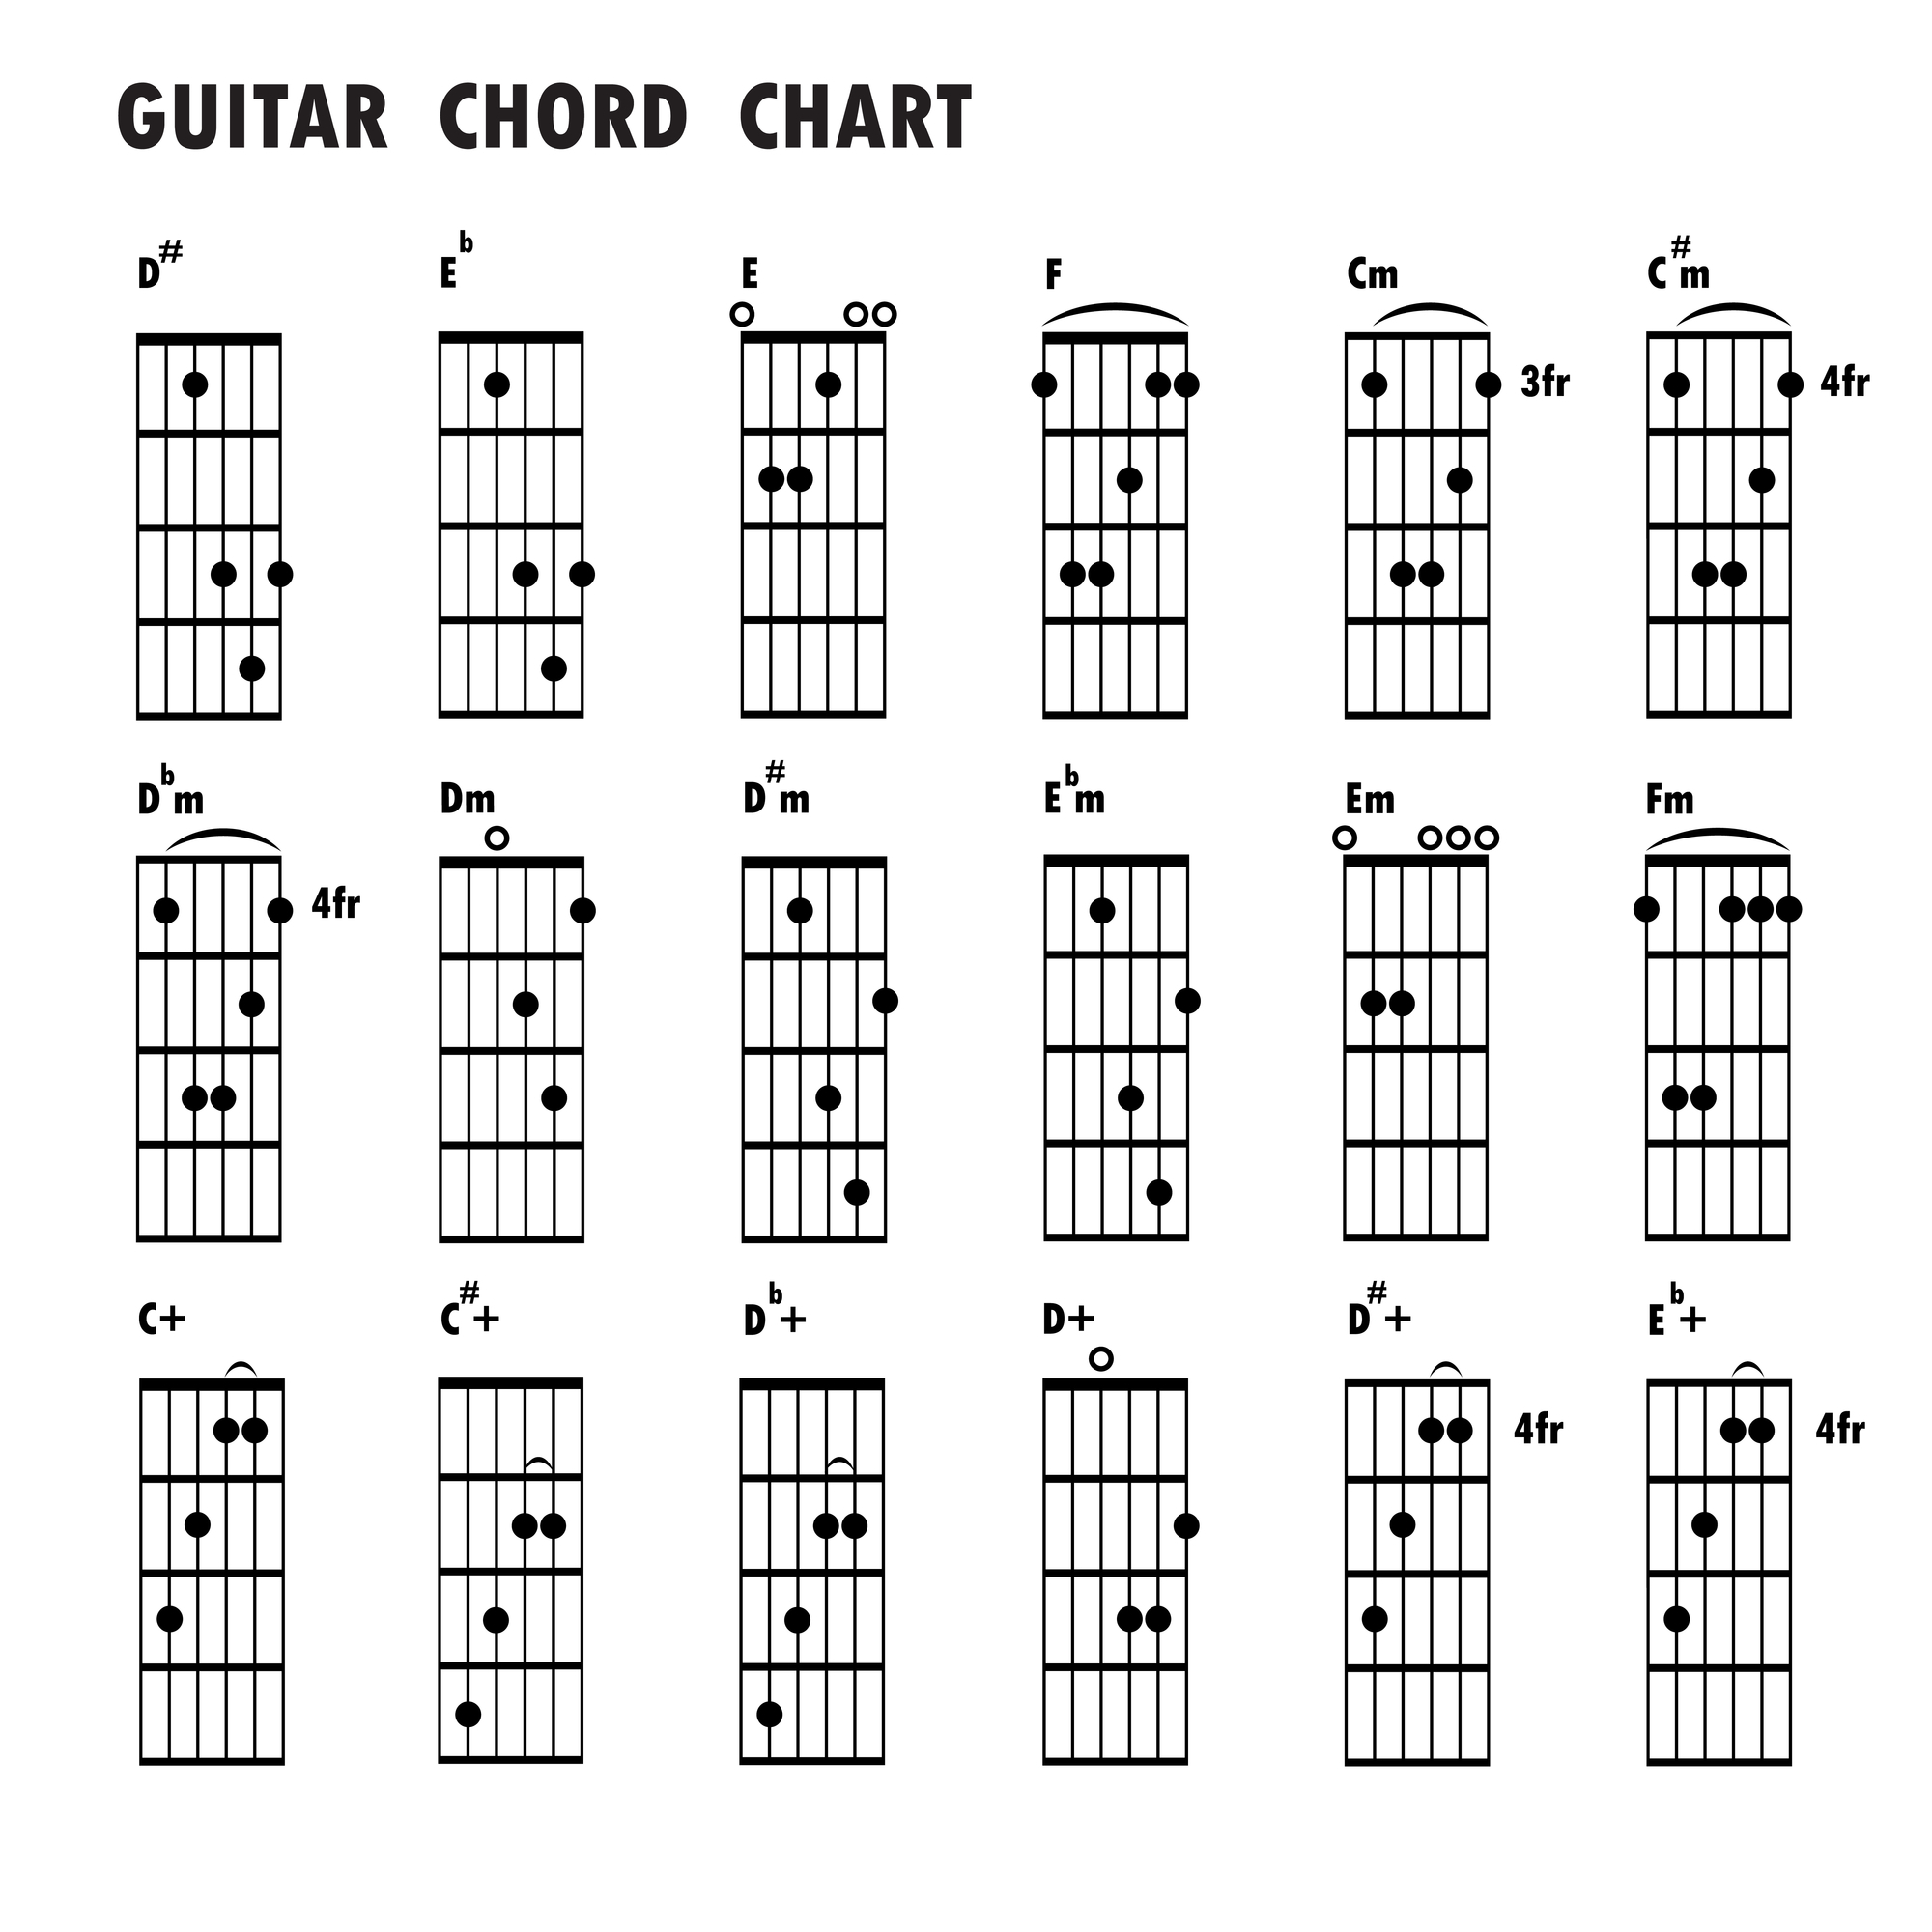 Beginner Guitar Chords Chord Changing Exercises How To Smoothly Change Your Chords